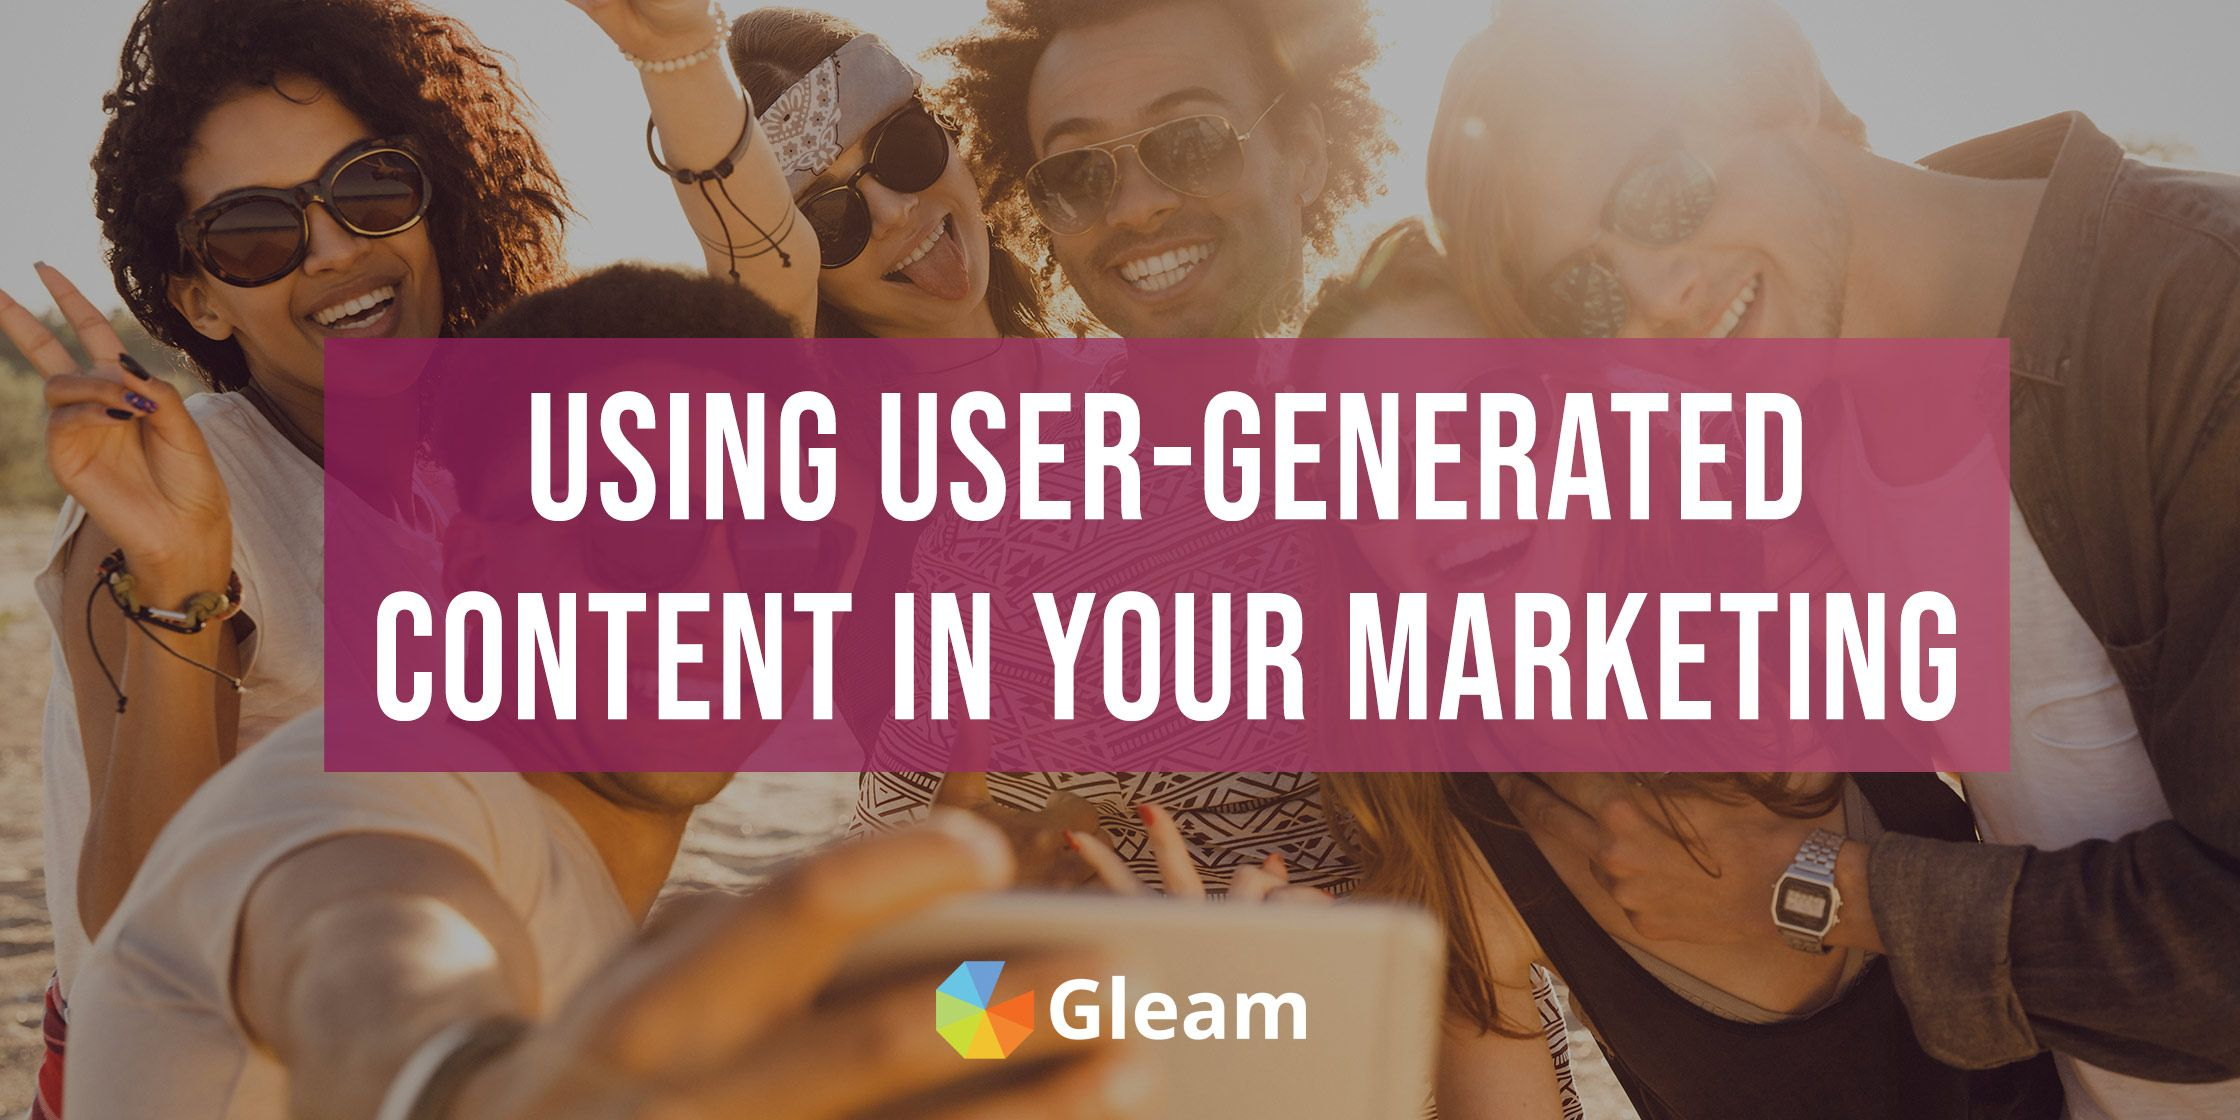 How To Use User-Generated Content In Your Marketing